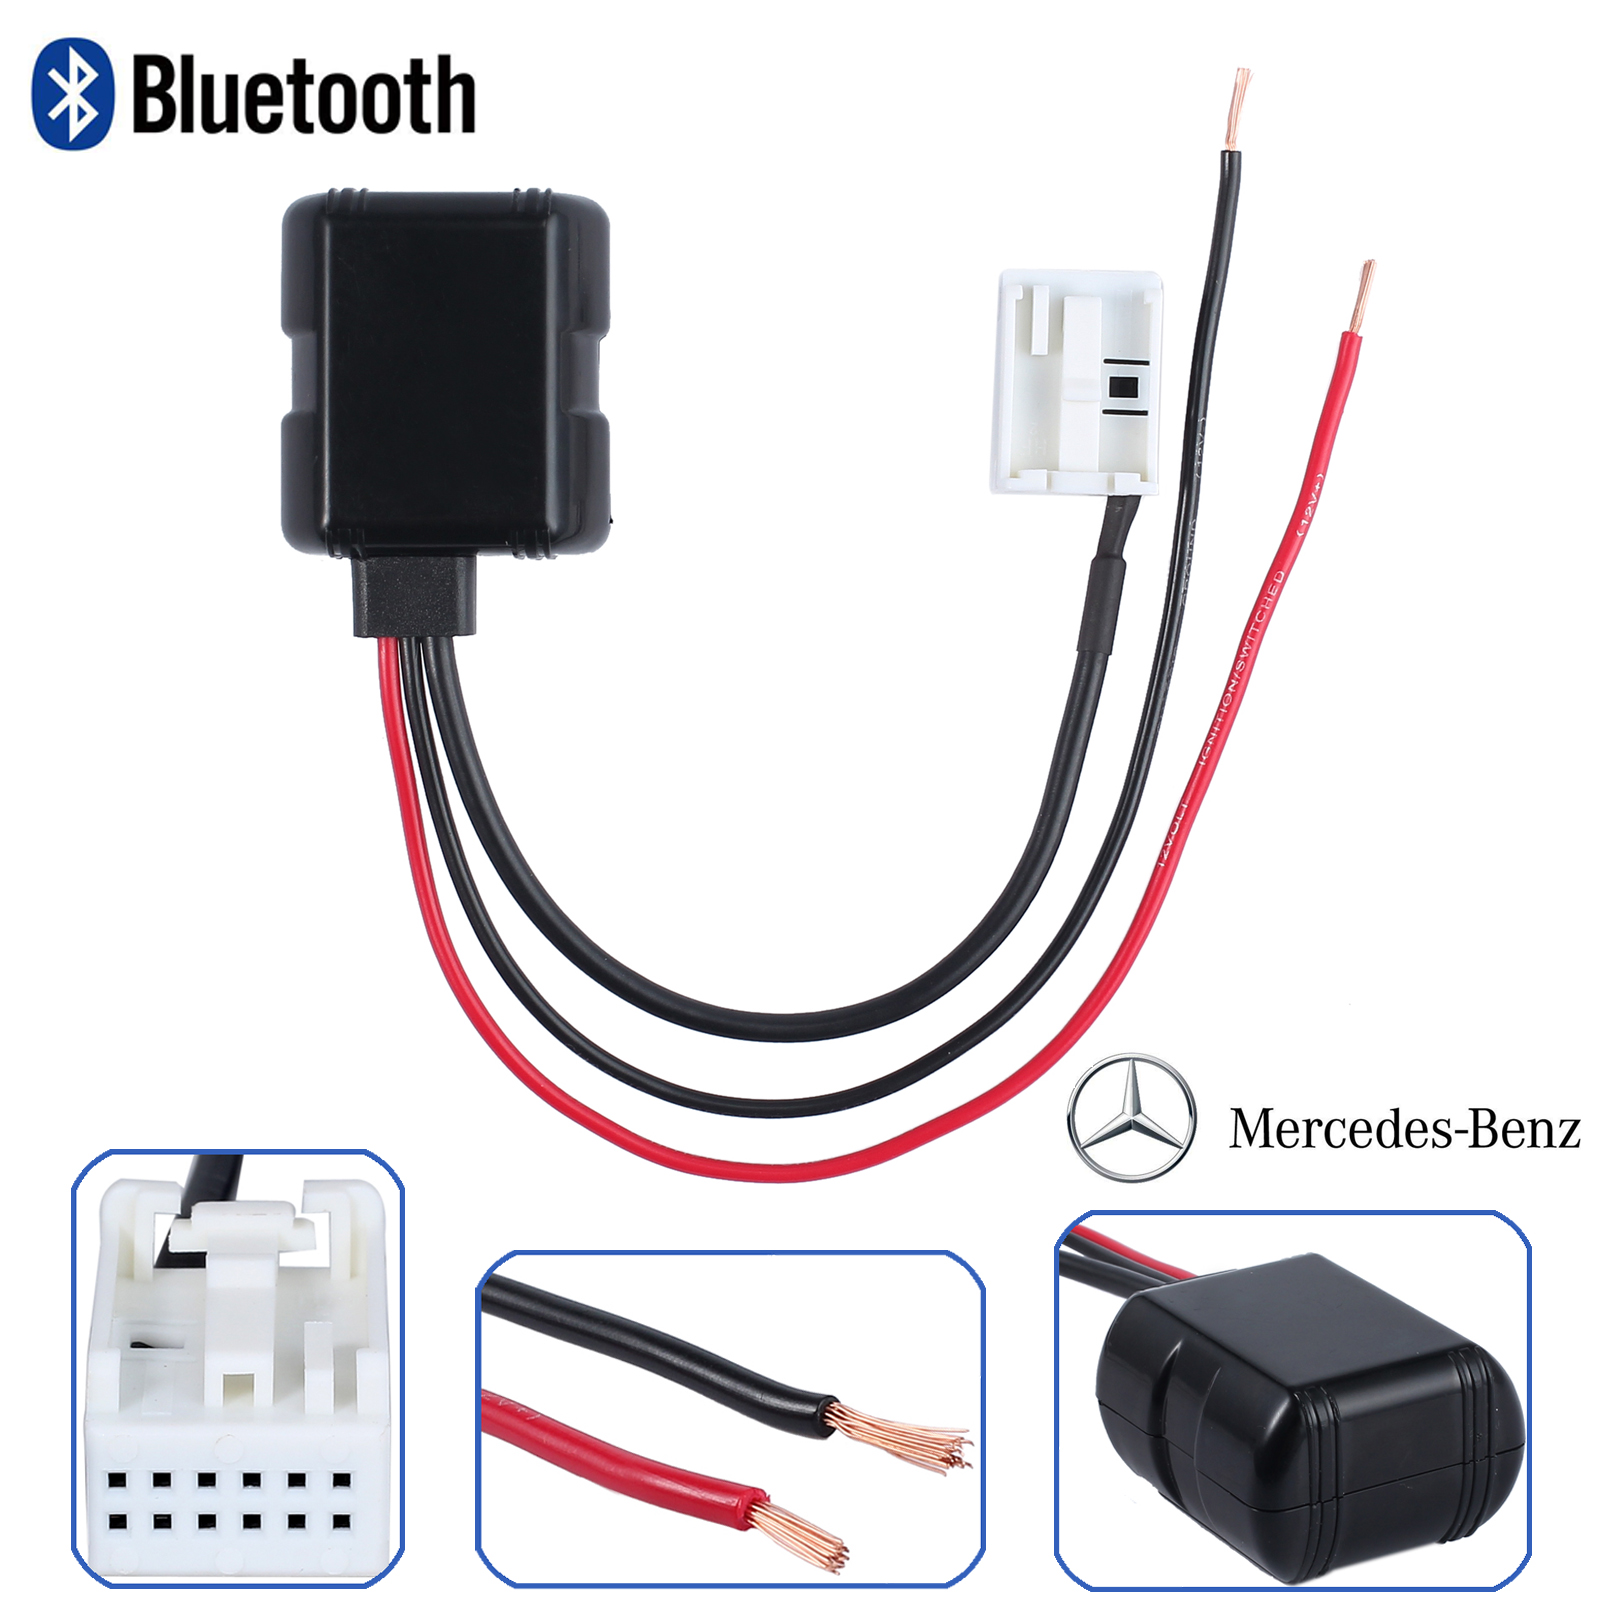 Diagnose kabel bluetooth aux in adapter kabel mercedes for Bluetooth adapter for mercedes benz e350